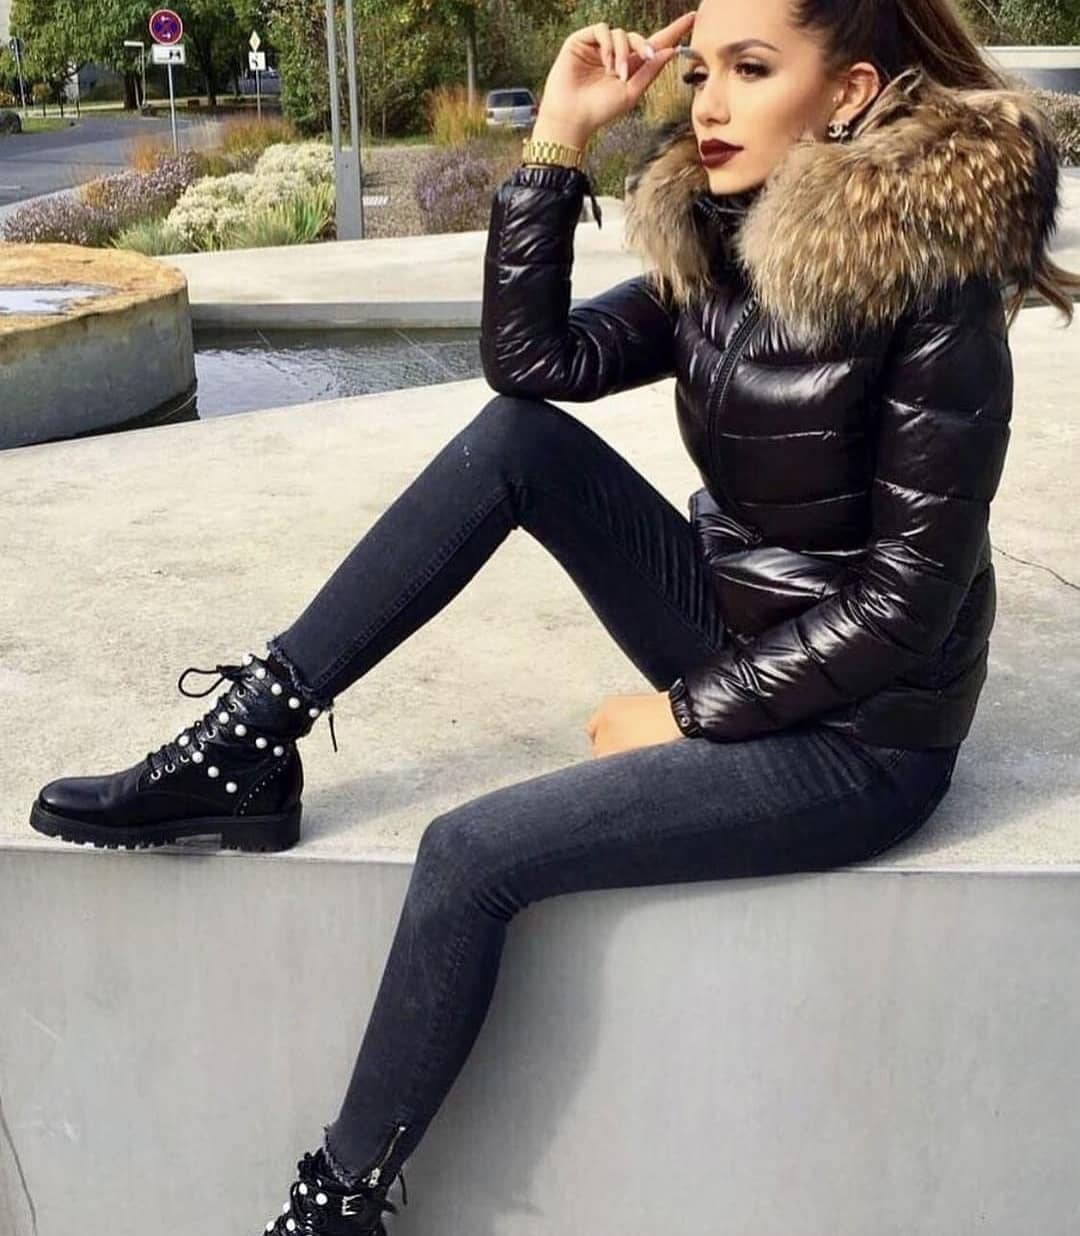 Black Puffer Jacket With Fur Collar And Skinny Jeans With Pearled Ankle Boots 2021